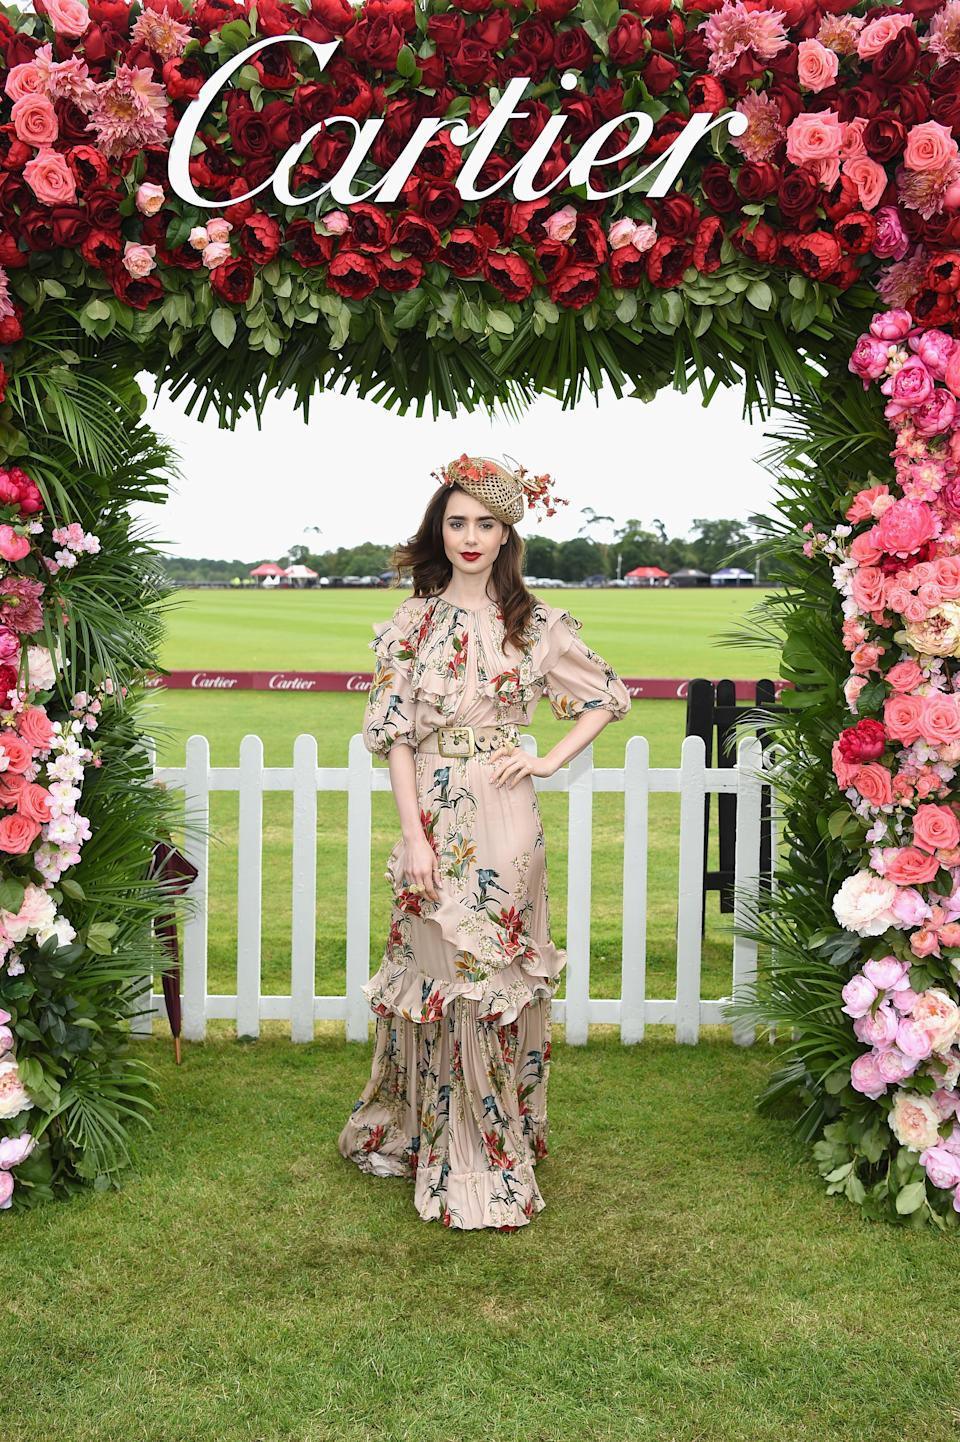 <p>Lily Collins attended the Cartier Queen's Cup Polo at Guards Polo Club on June 17 in a ruffled floral dress and co-ordinating fascinator. [Photo: Getty] </p>